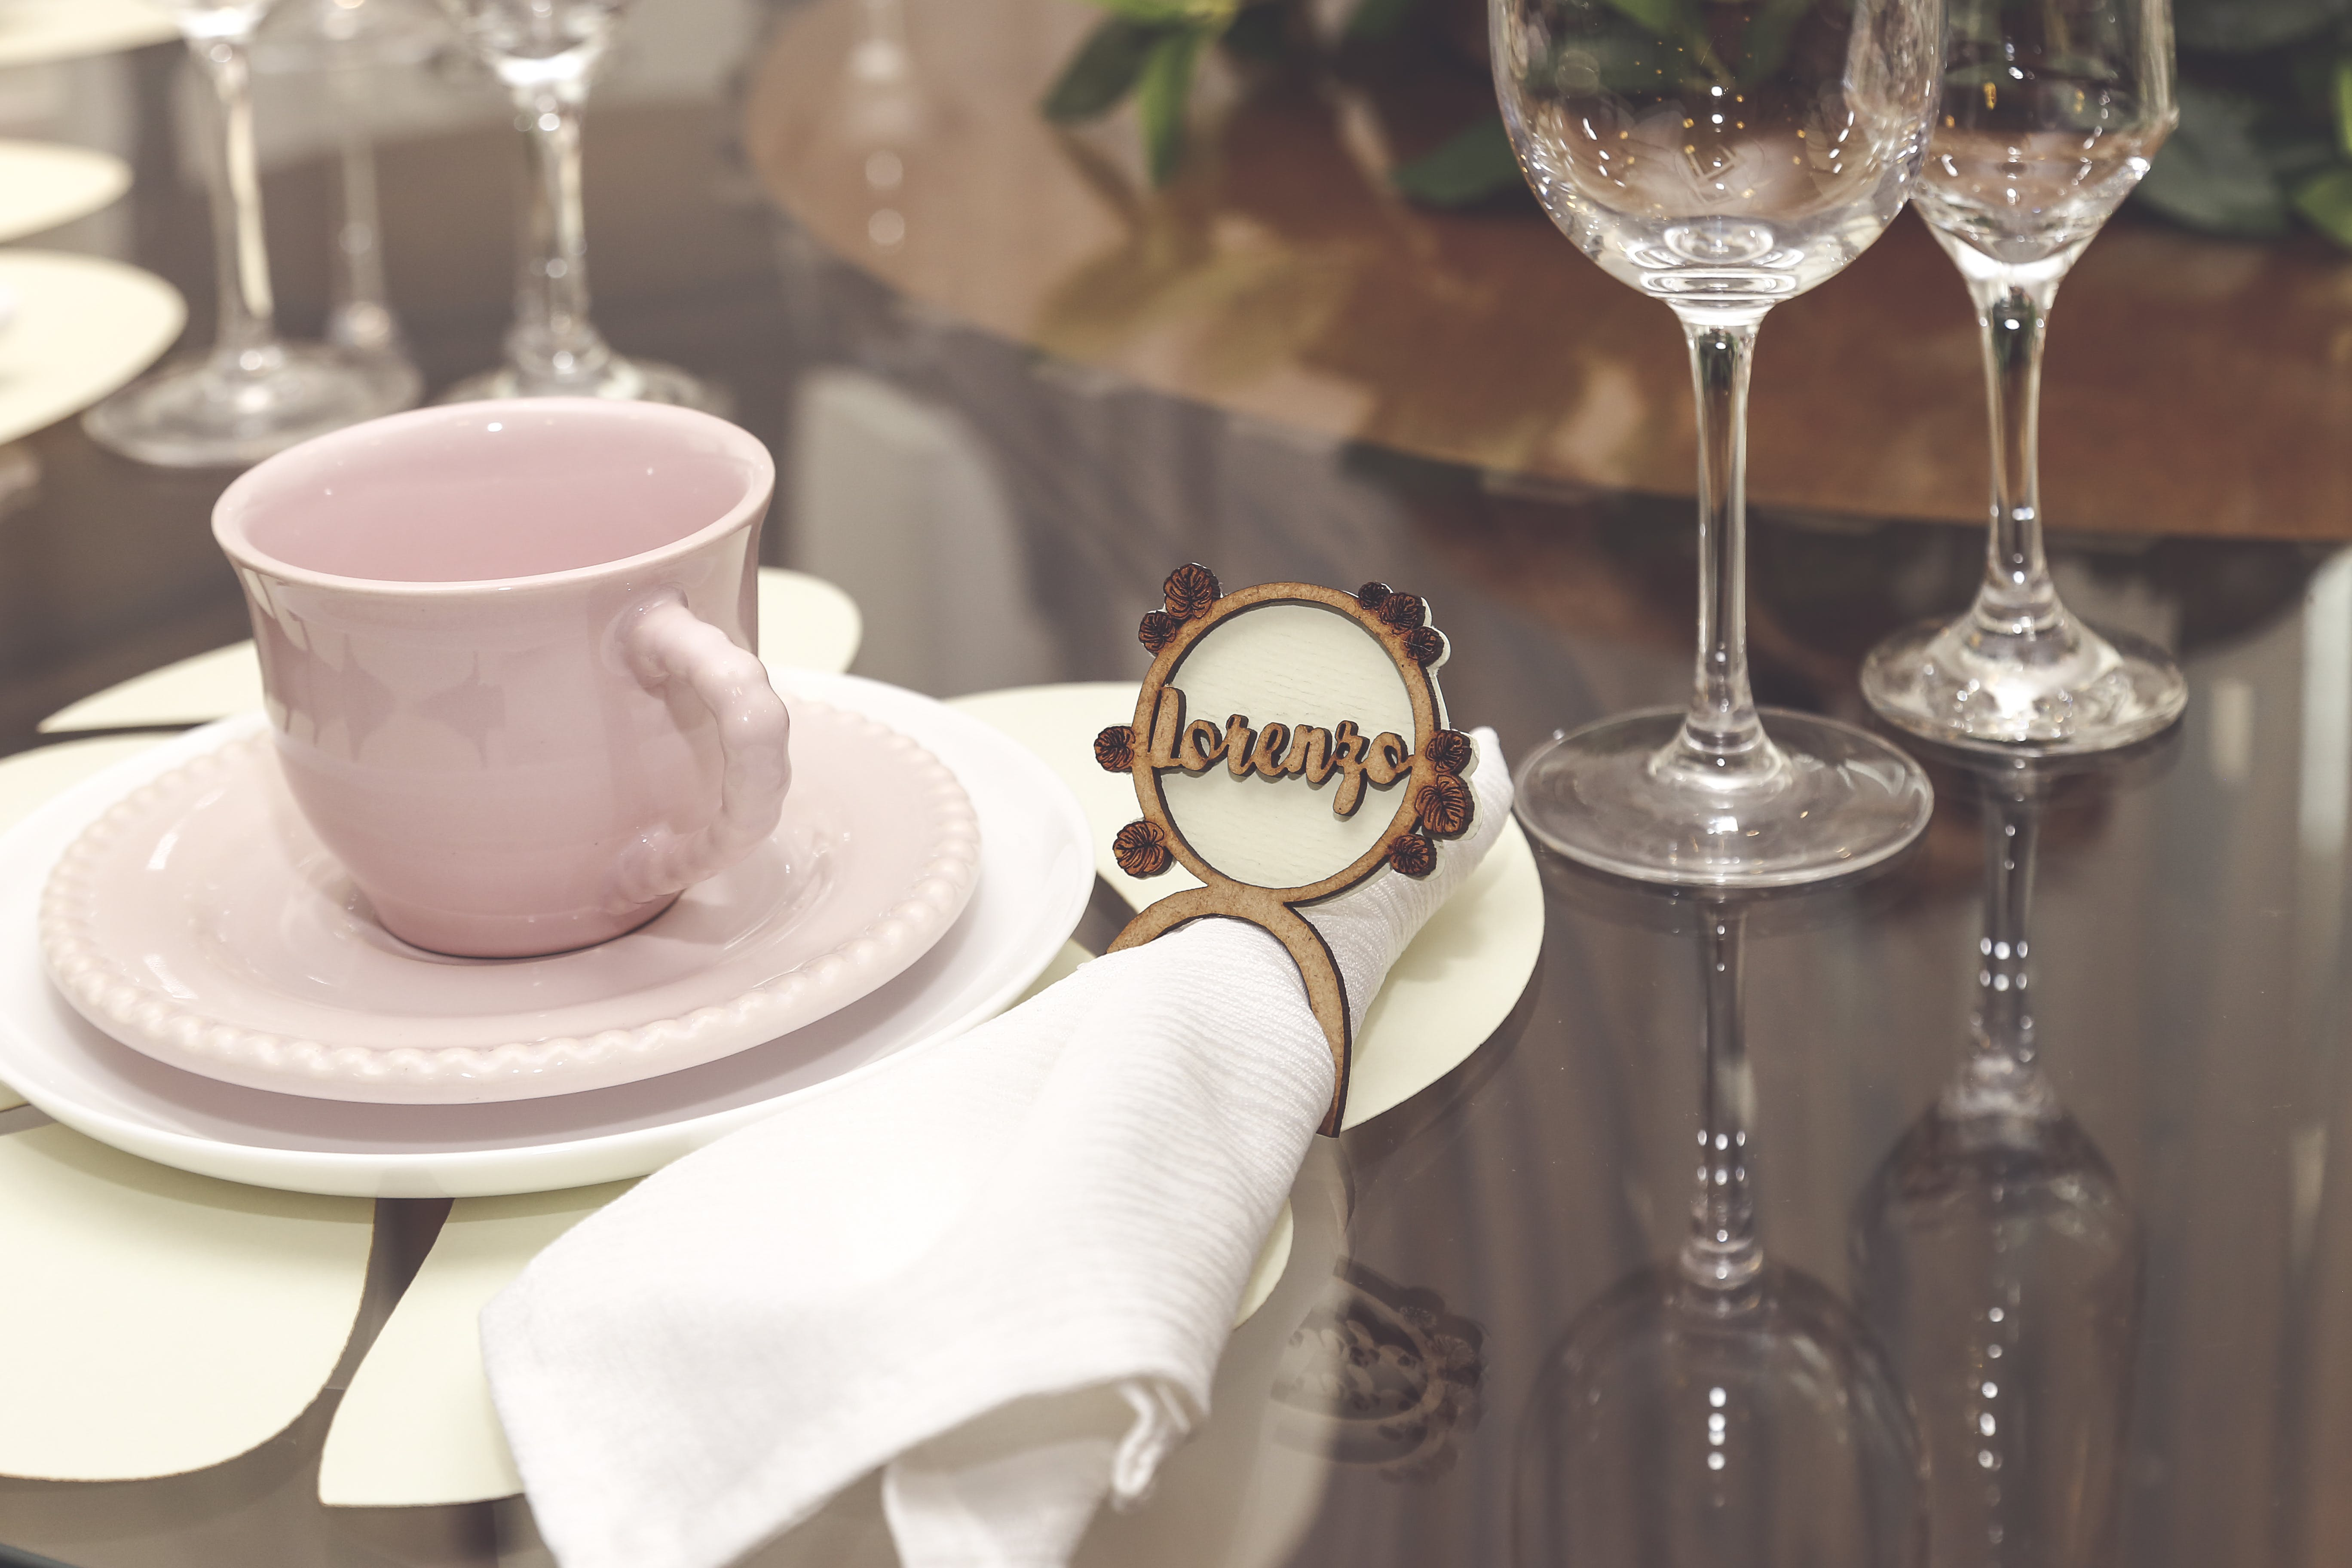 Pink Ceramic Cup With Saucer Besides White Napkin